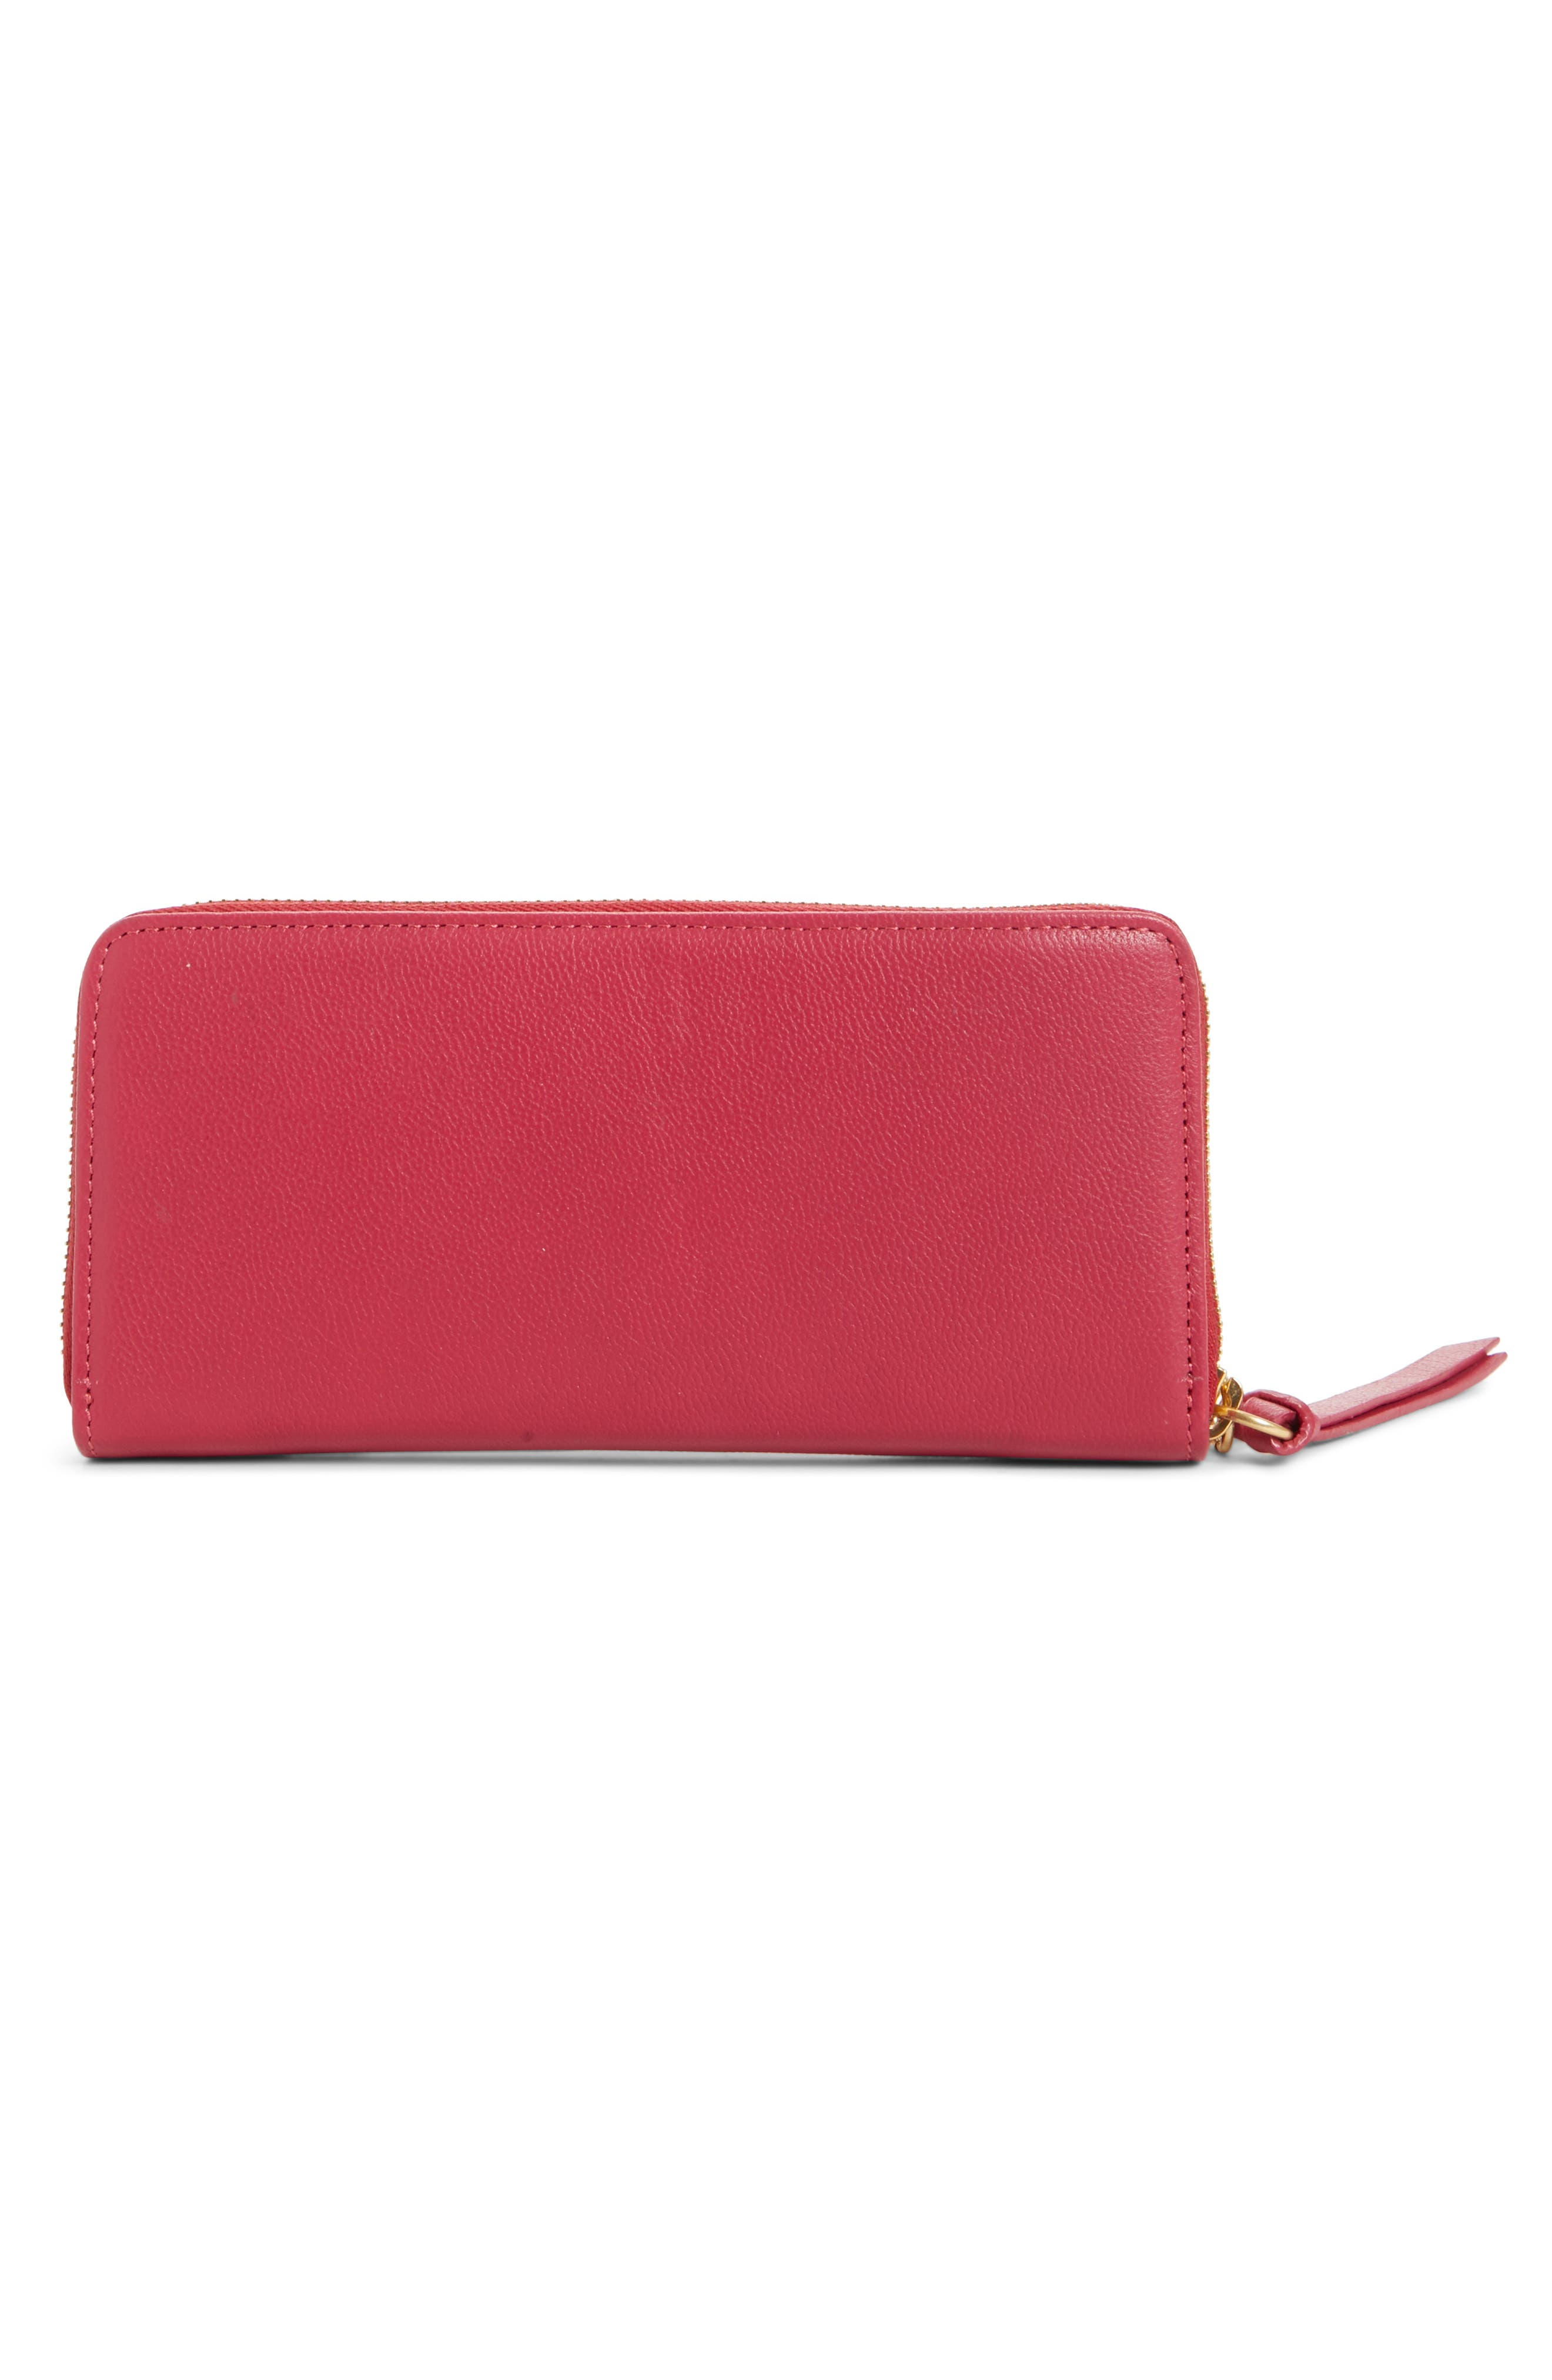 Mino Zip Around Leather Wallet,                             Alternate thumbnail 3, color,                             Berry Pink